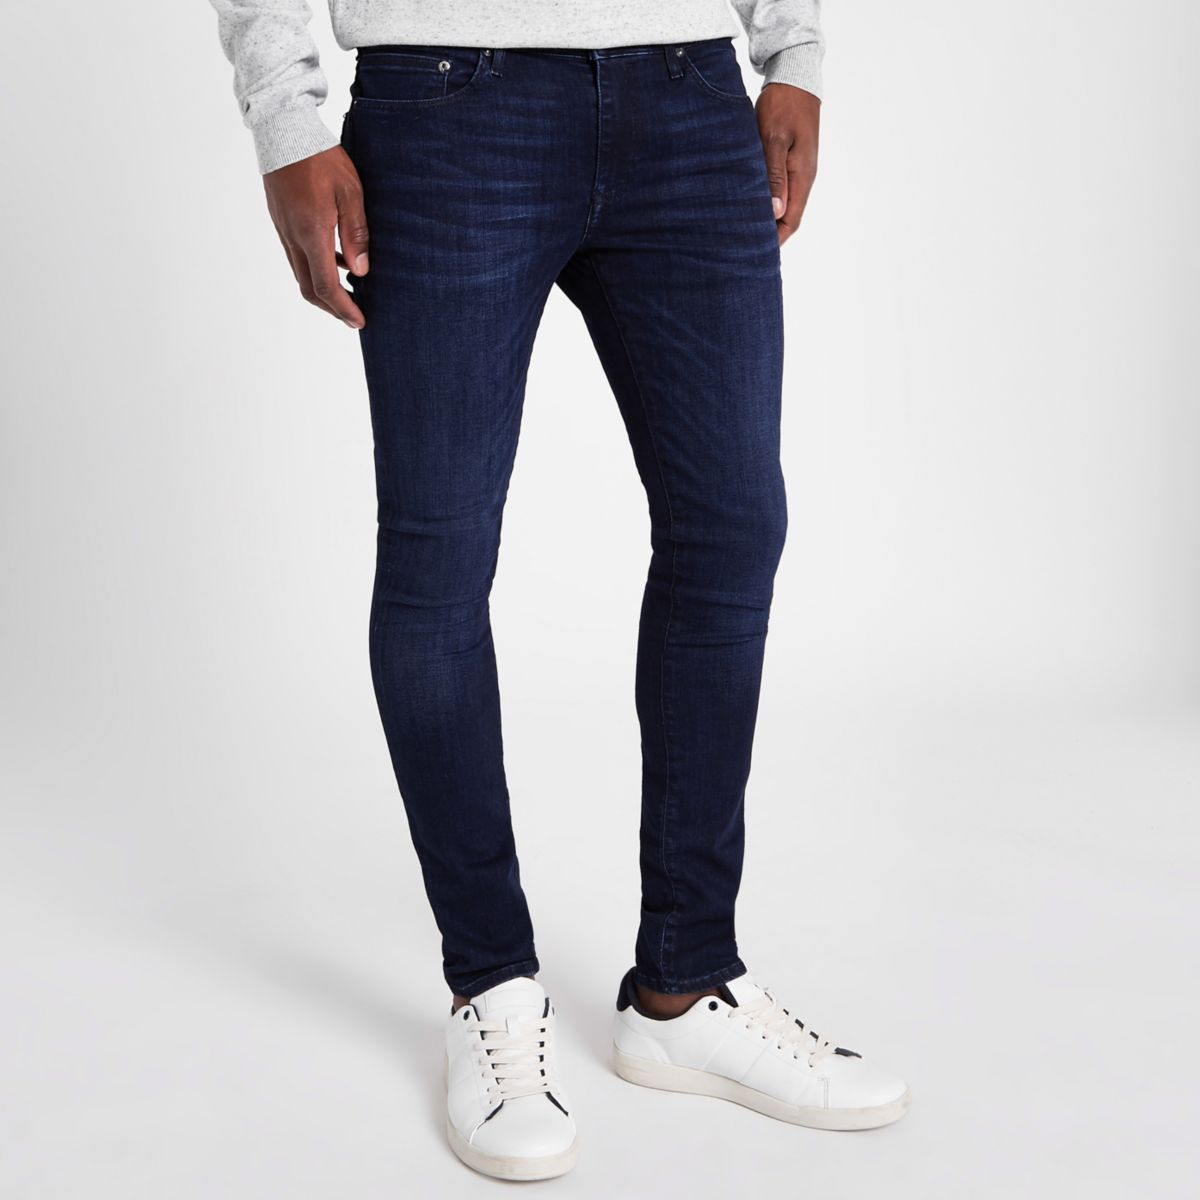 Back to School Jeans. Want to walk down the hallway in style? Then walk this way for the latest styles in jeans for girls and guys. Hot Topic is the home for original black skinny jeans. Earn yourself an A in style by checking out our men's skinny jeans.